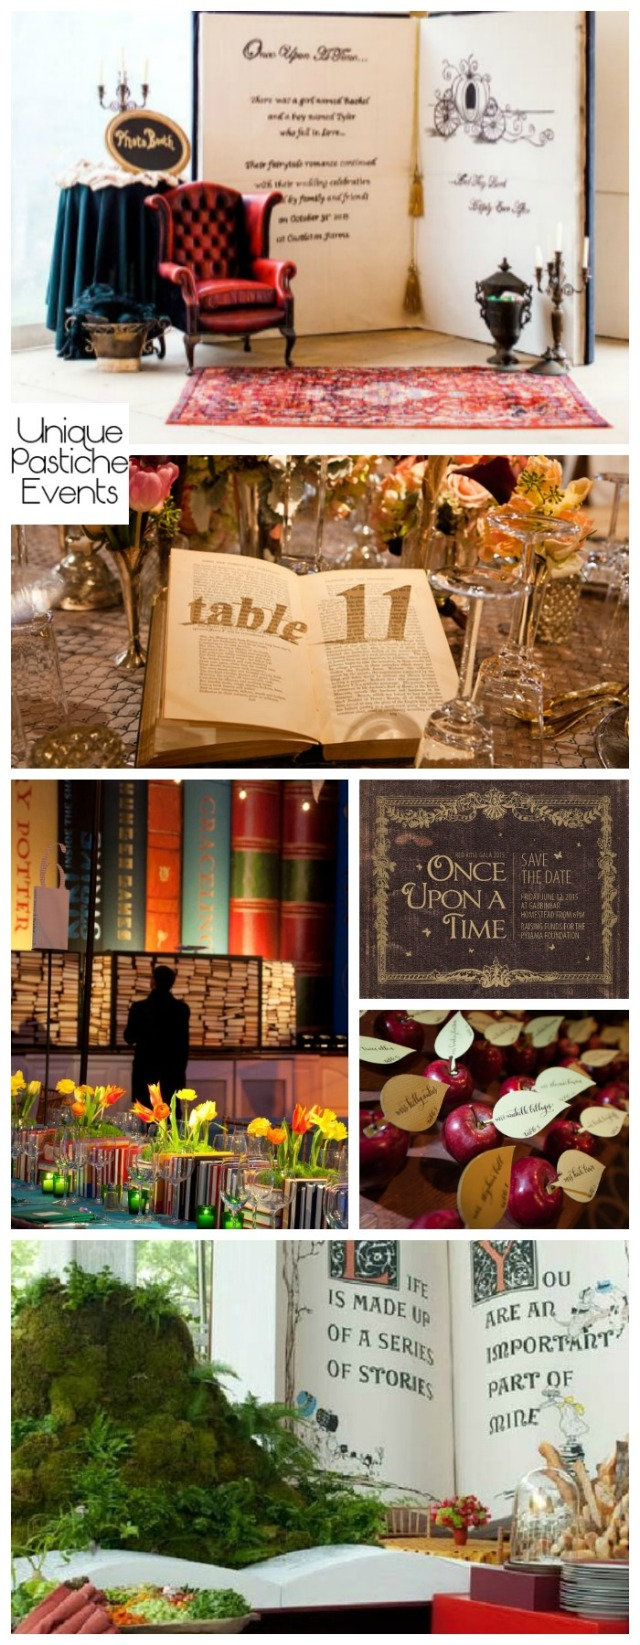 Once Upon a Time Storybook Gala Ideas Get more ideas about this party theme on the original post: https://uniquepasticheevents.com/2016/10/26/once-upon-a-time-storybook-gala-ideas/